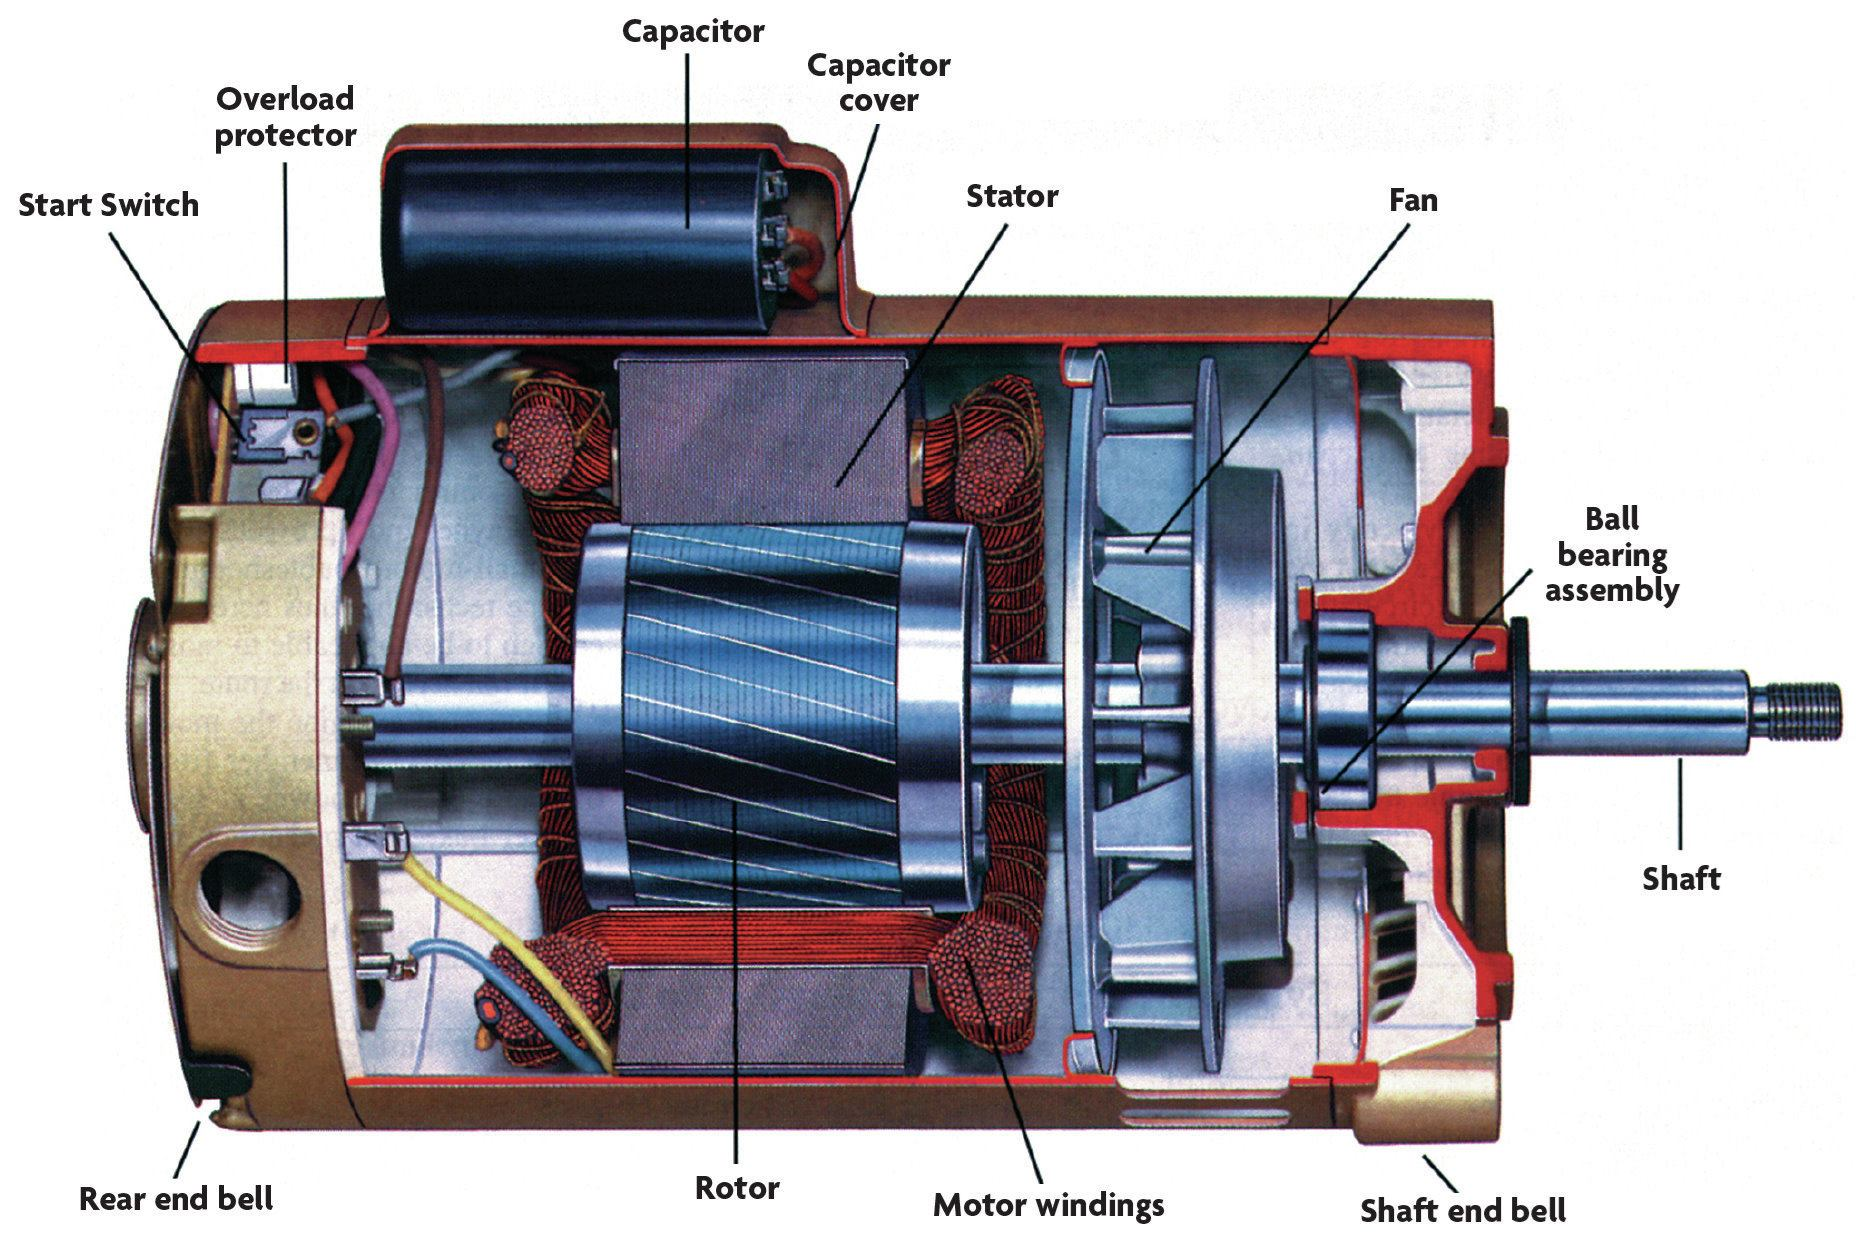 230v 1 Phase Wiring Diagram Free Picture Bearing Replacements Pool Amp Spa News Repair Pools